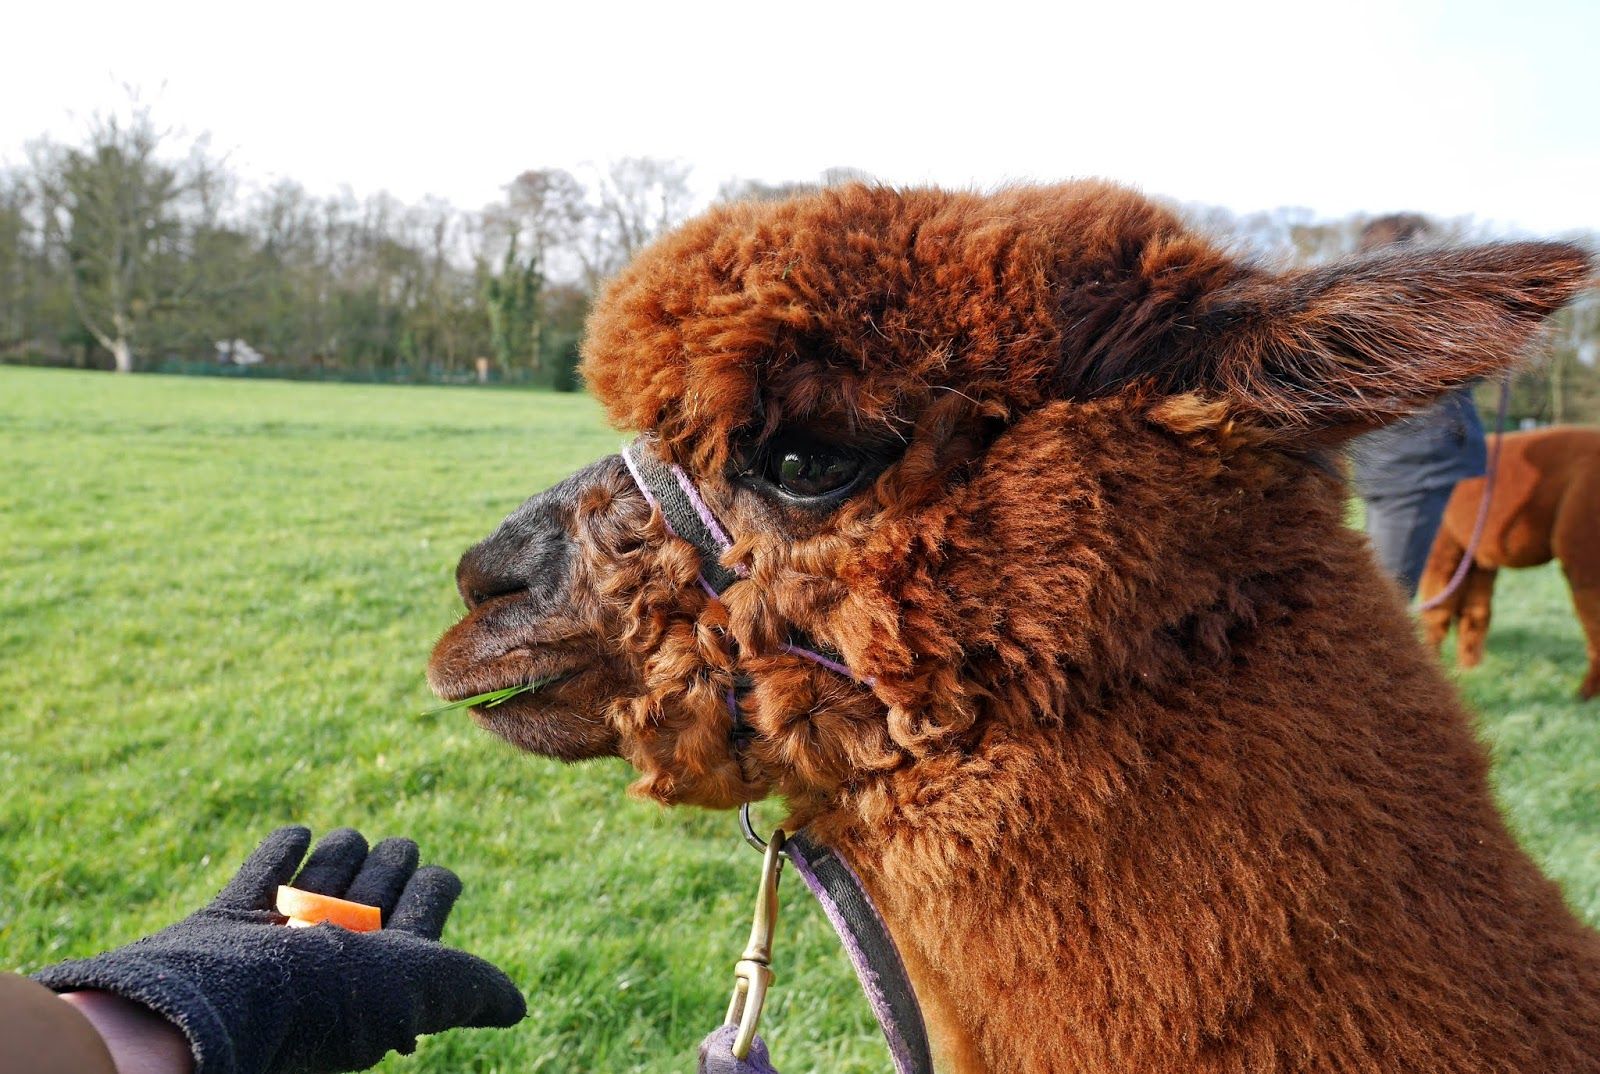 Alvin the alpaca at Quex Park in Birchington, Kent